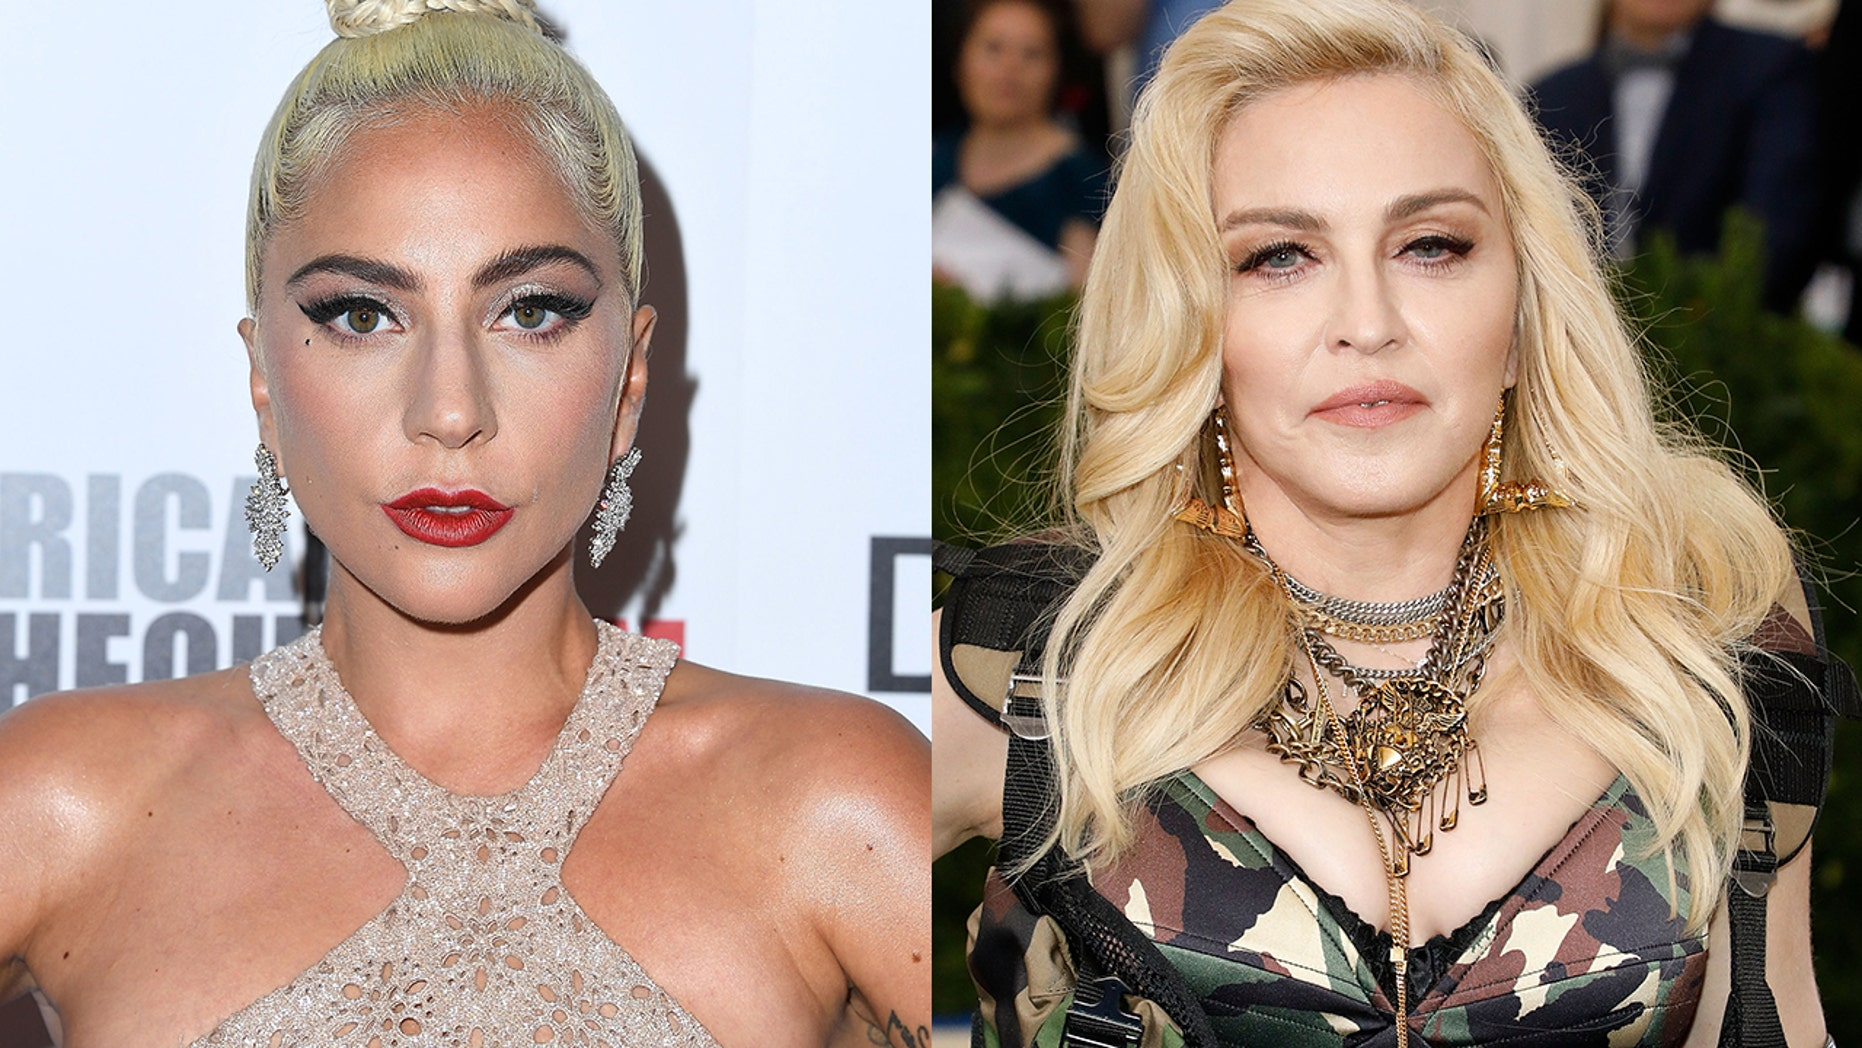 Madonna threw shade at Lady Gaga after fans noticed a pattern in her 'A Star is Born' press tour.